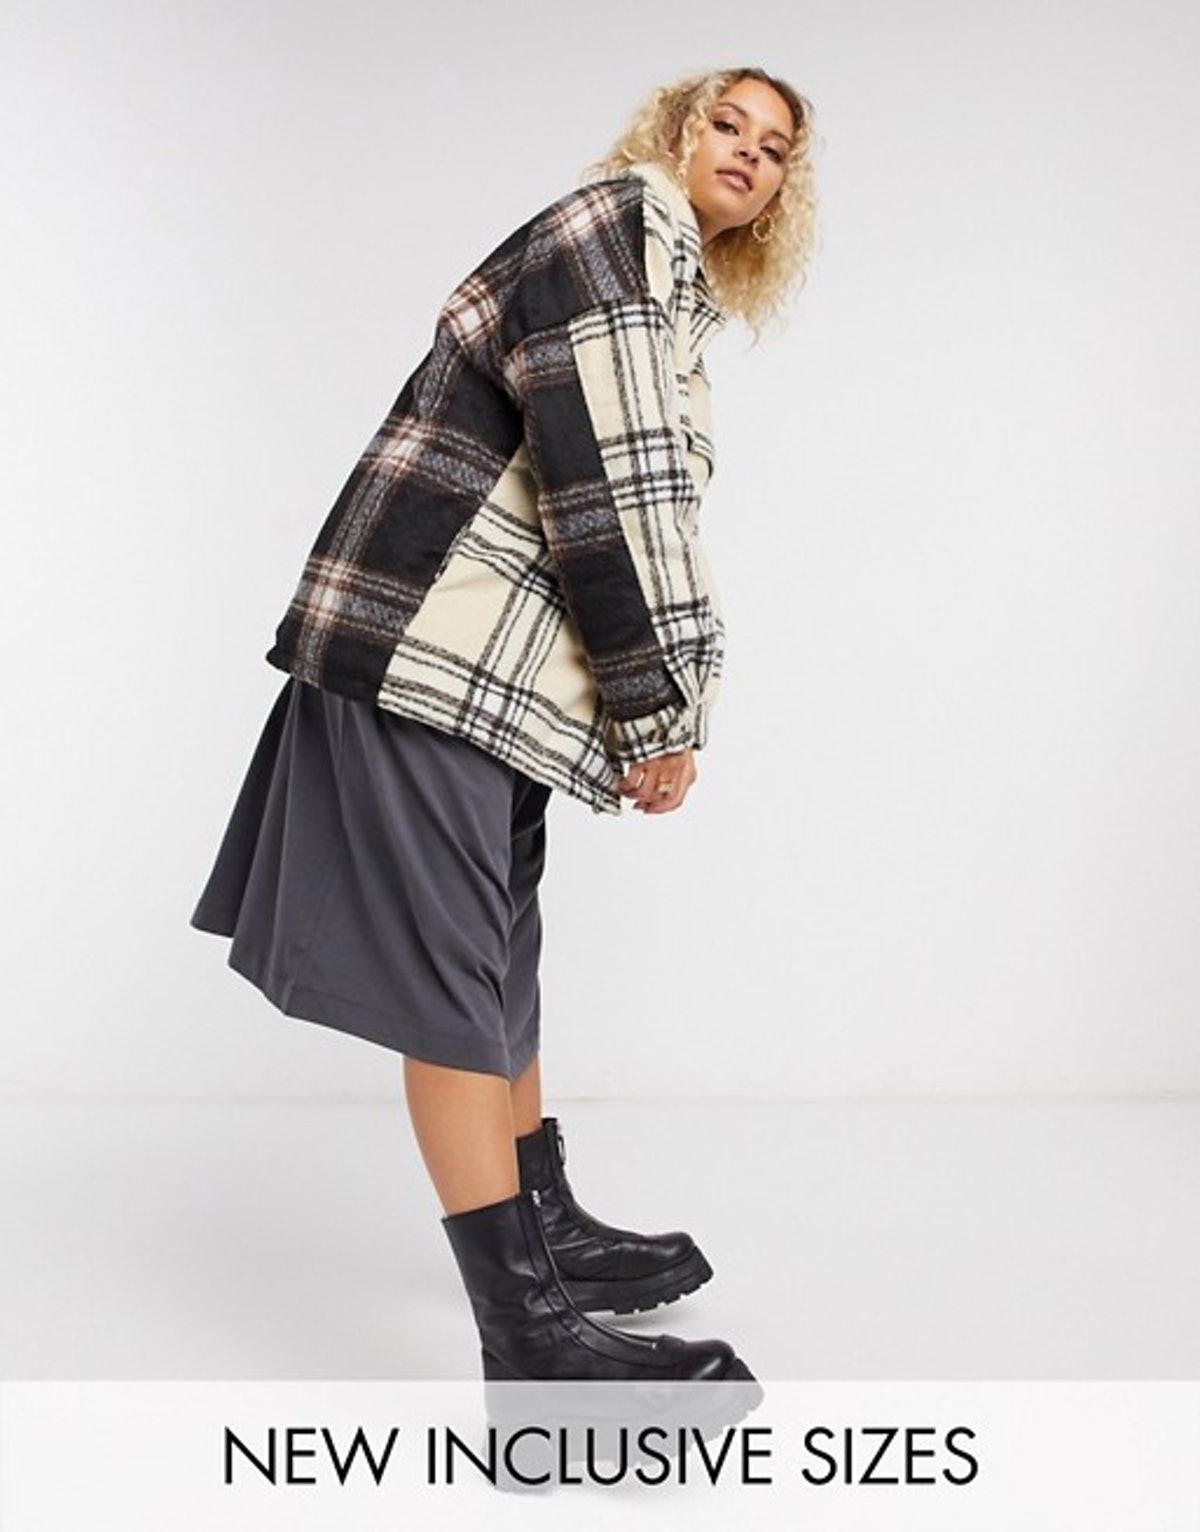 Collusion Unisex Padded Spliced Check Jacket